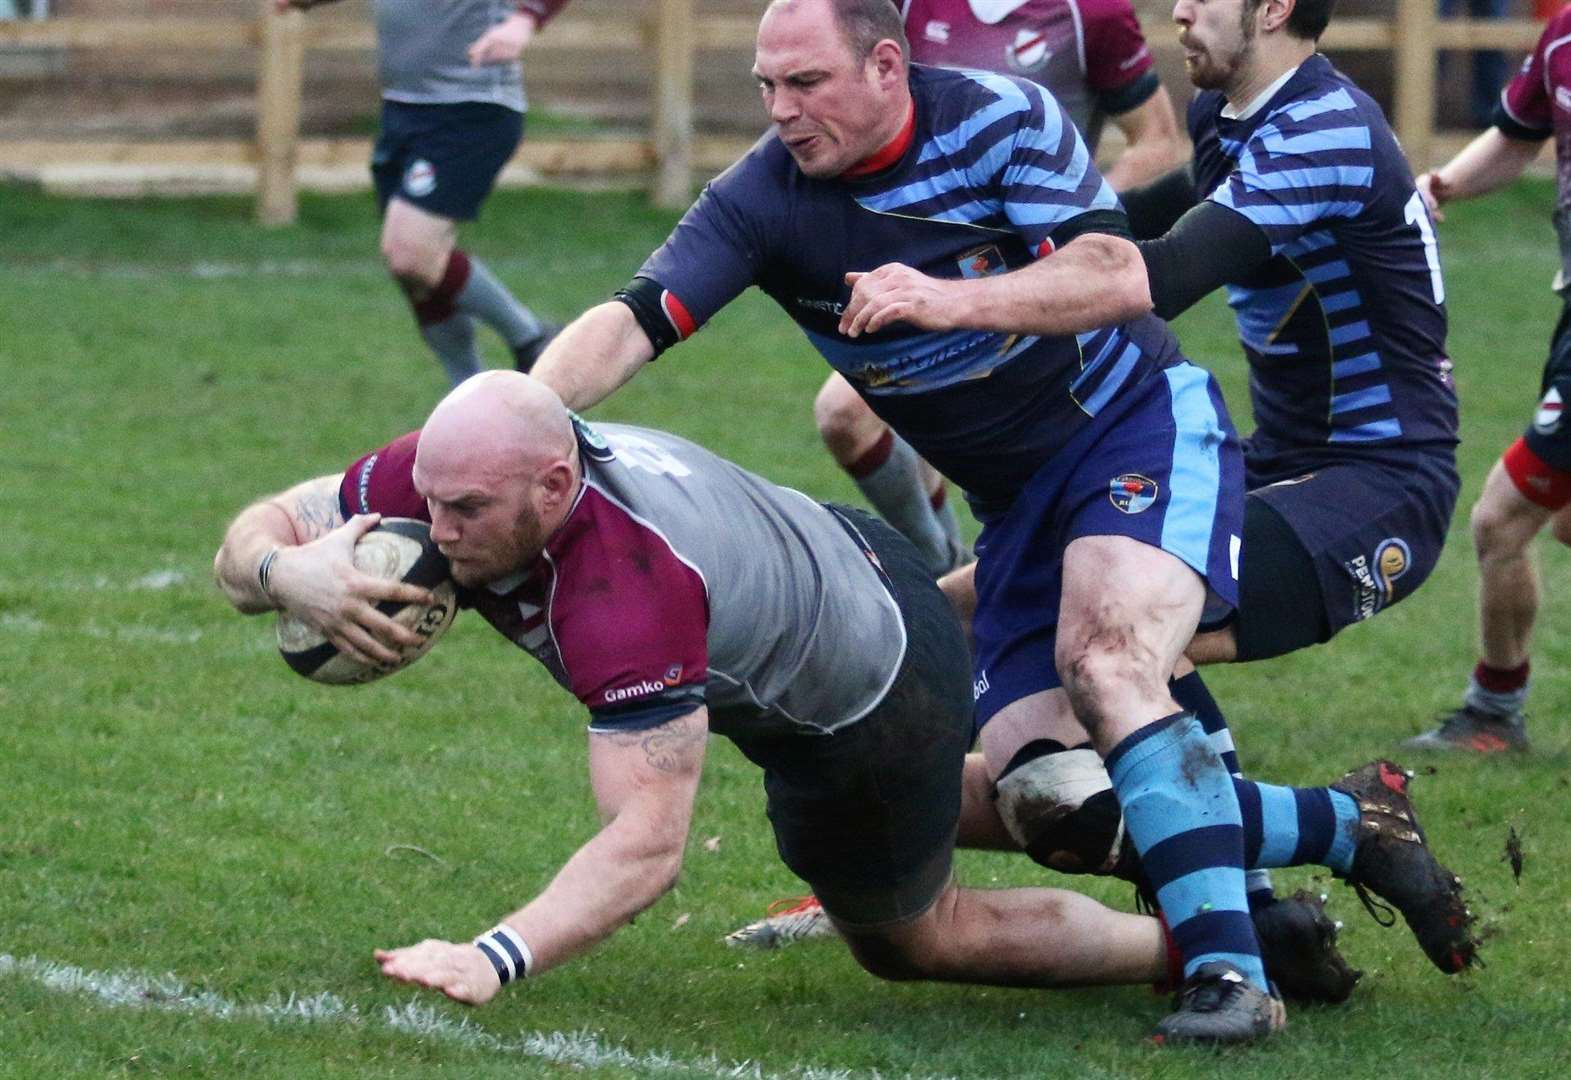 West Norfolk claim the derby spoils against Fakenham in London 3 Eastern Counties division